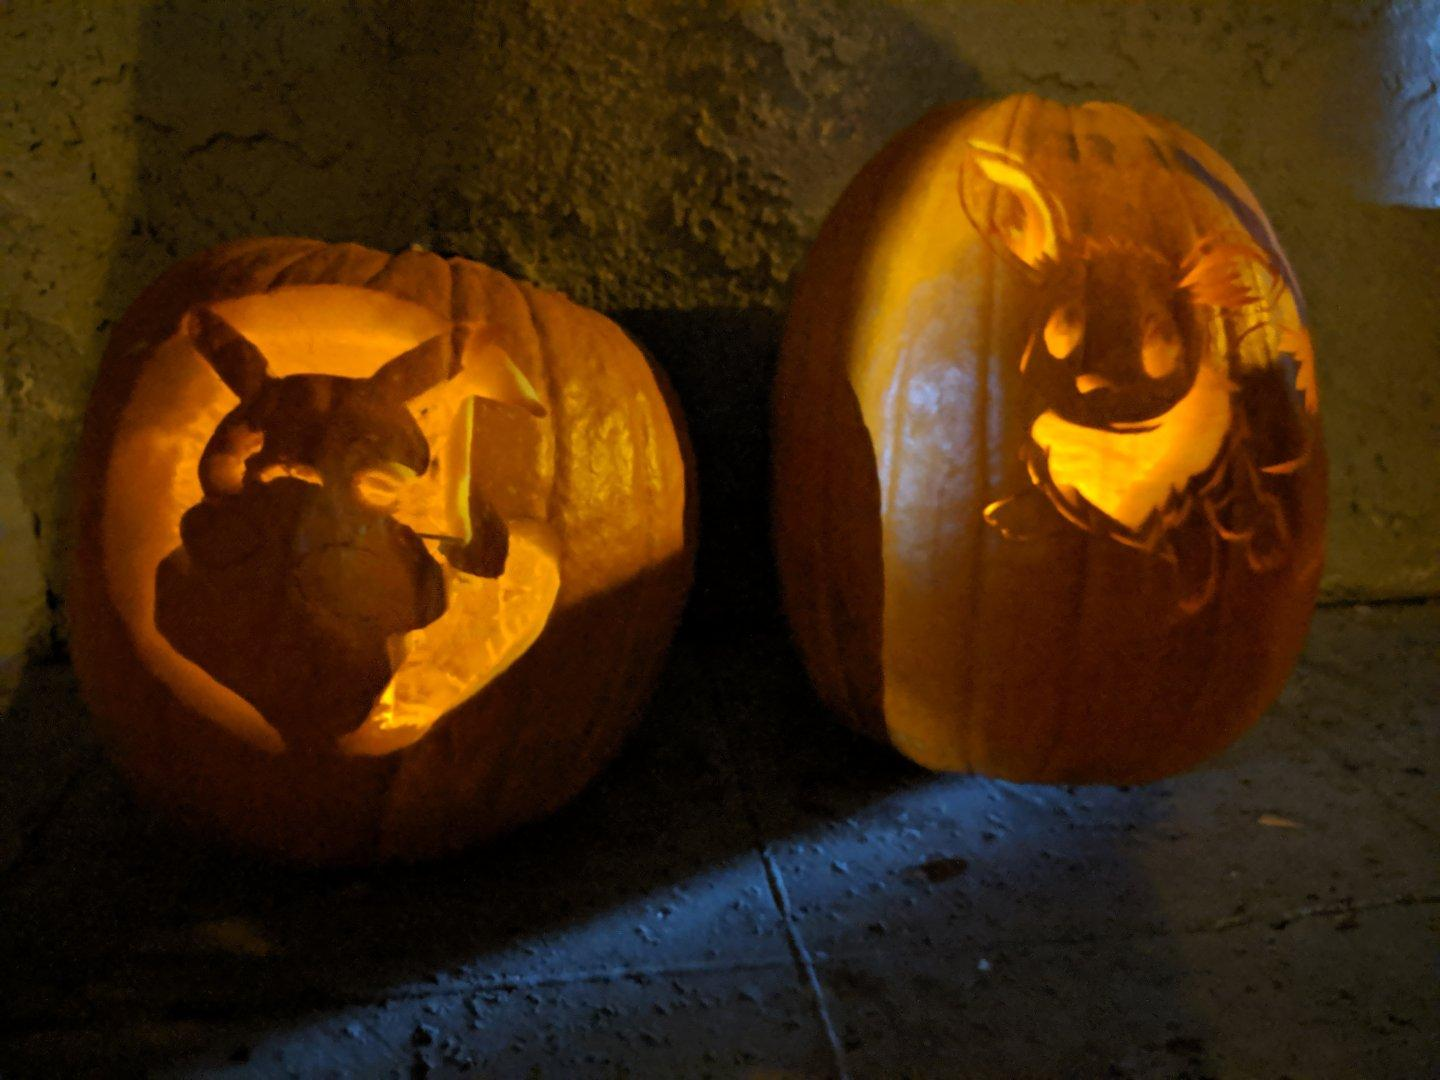 This year's jack-o'-lantern theme: #Pokemon. (No big surprise, since the kid has jumped into the franchise with both feet lately.) #halloween